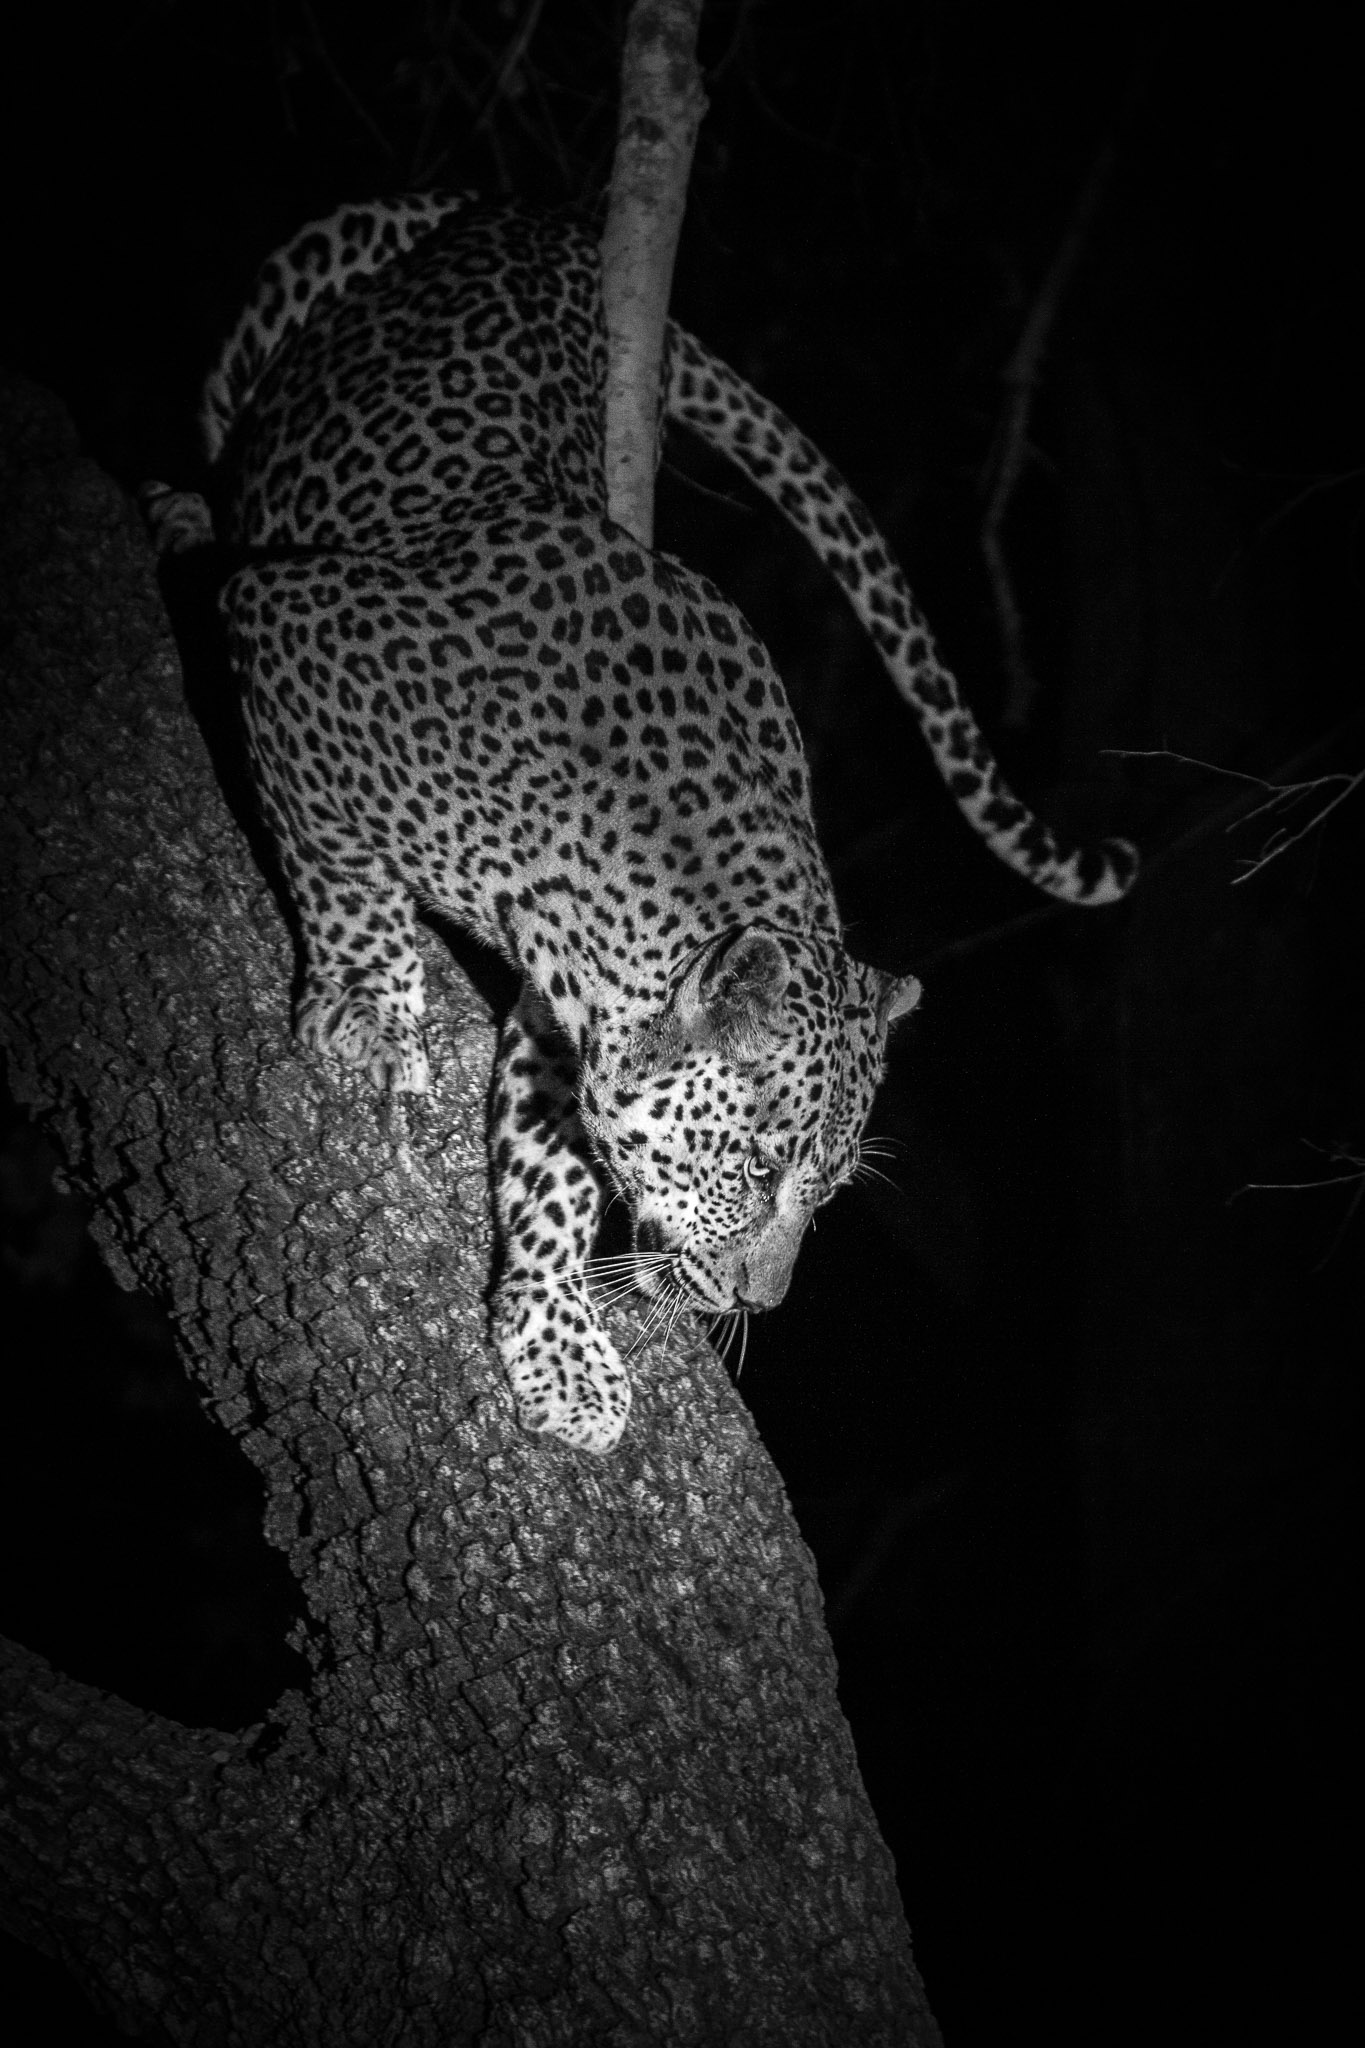 A leopard climbing down a tree at night